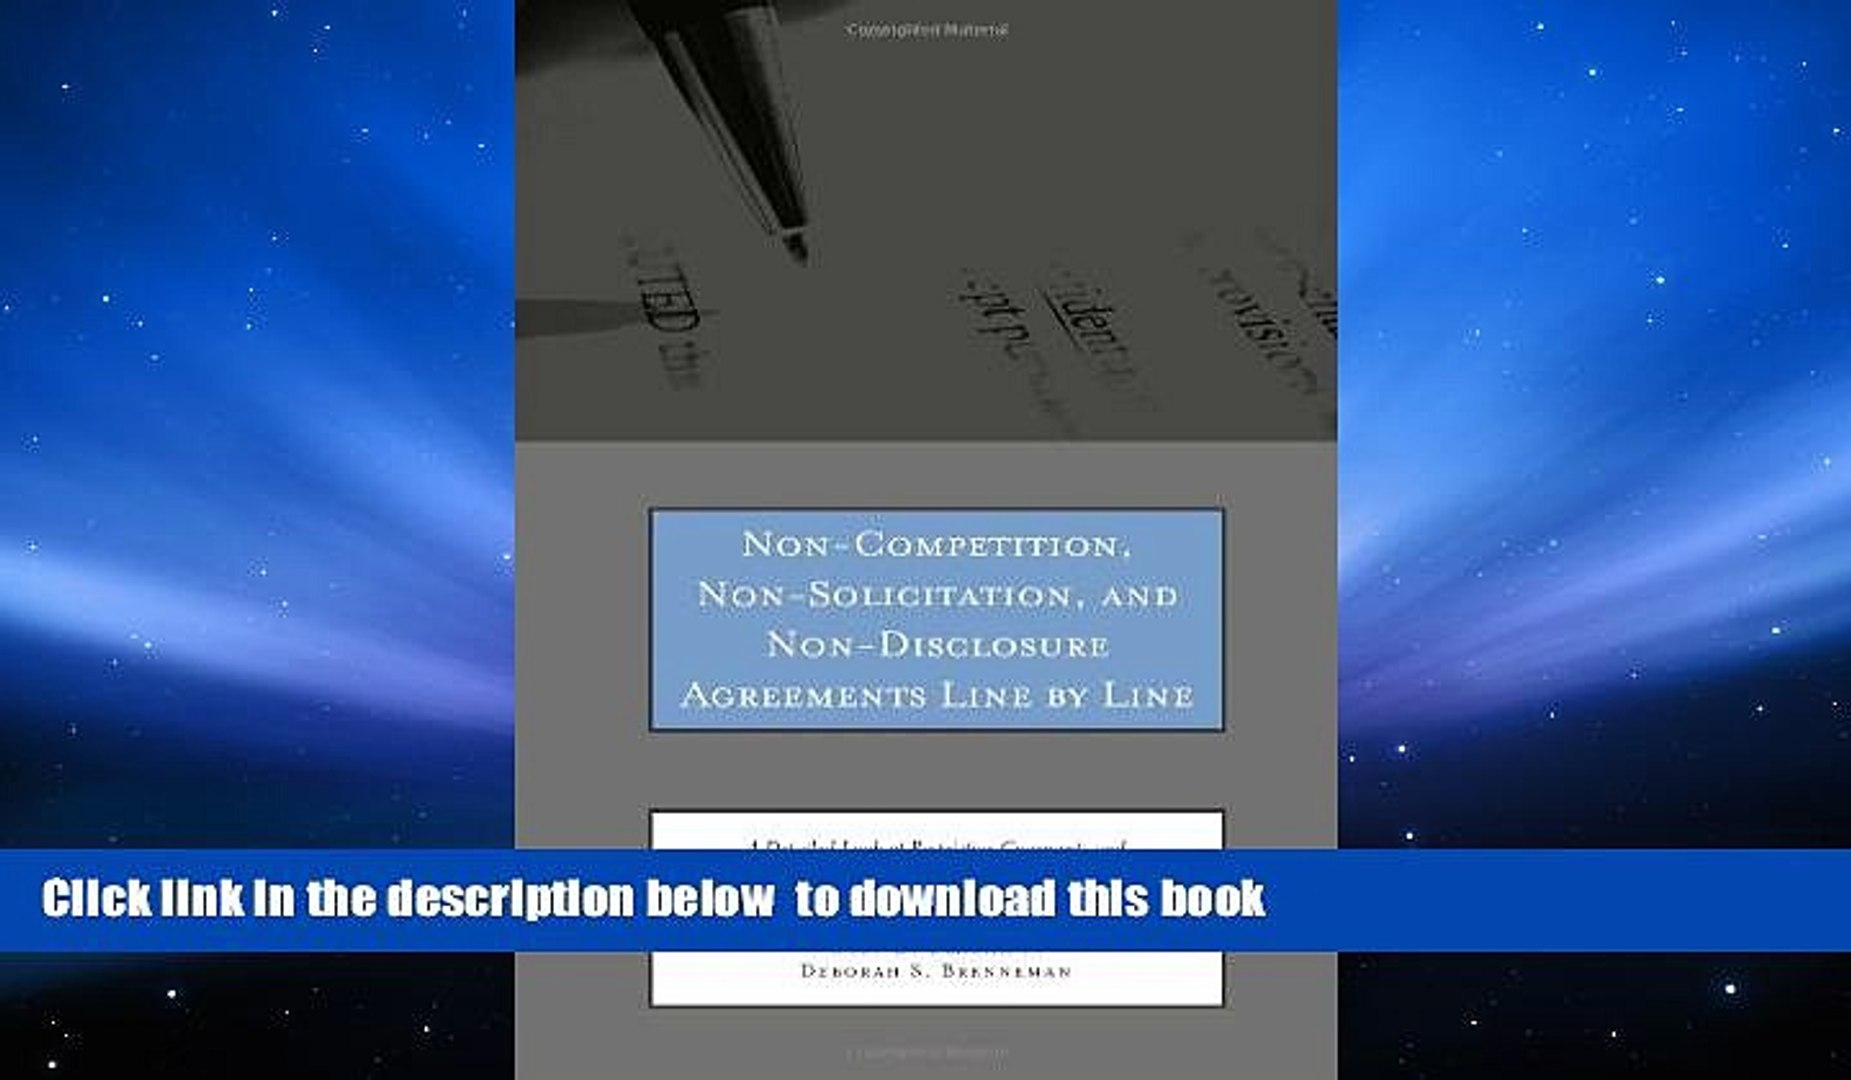 PDF [DOWNLOAD] Non-Competition, Non-Solicitation, and Non-Disclosure Agreements Line by Line: A